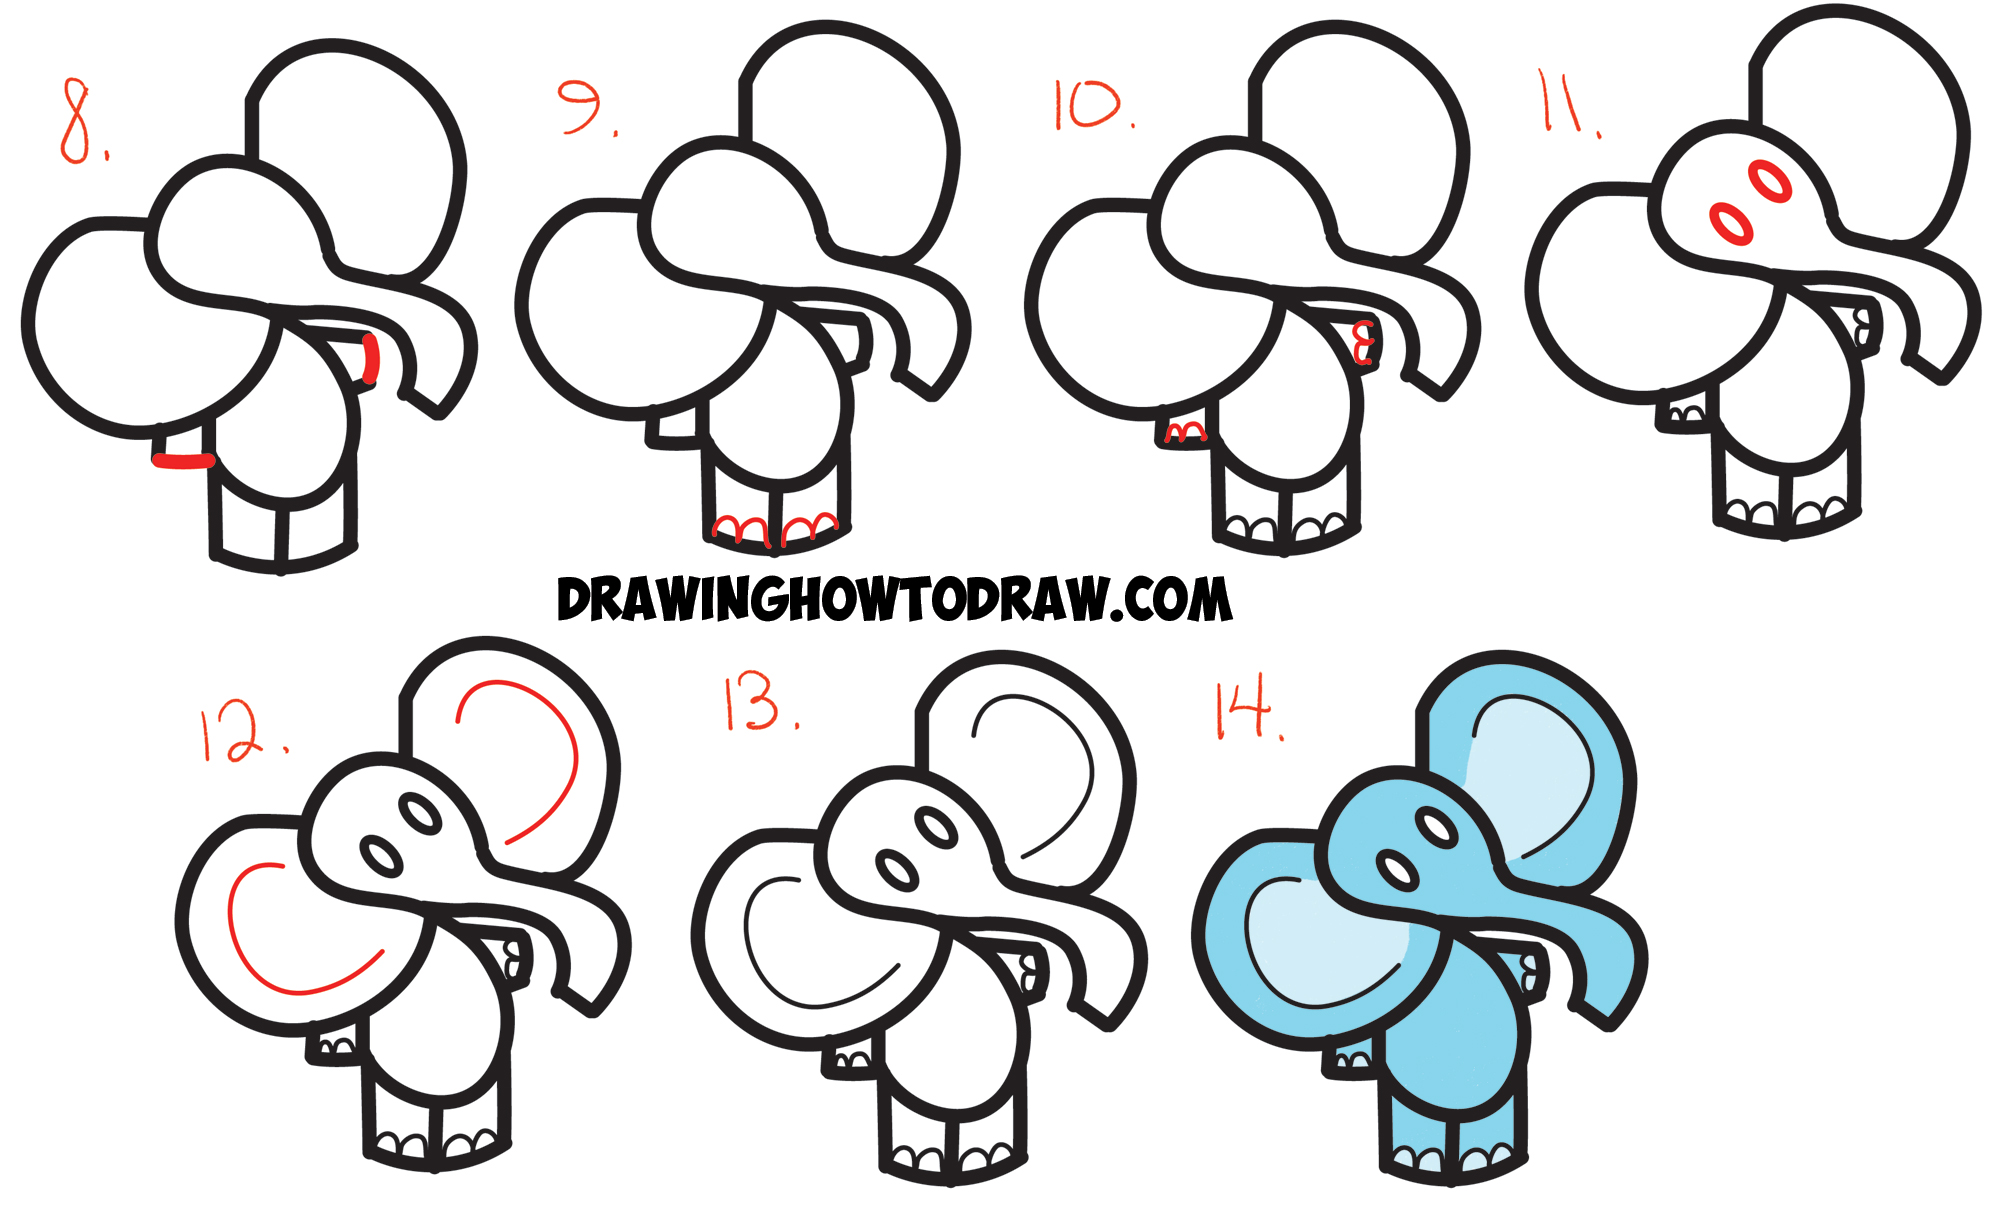 2000x1207 Learn How To Draw Cute Cartoon Elephant From The Dollar Sign